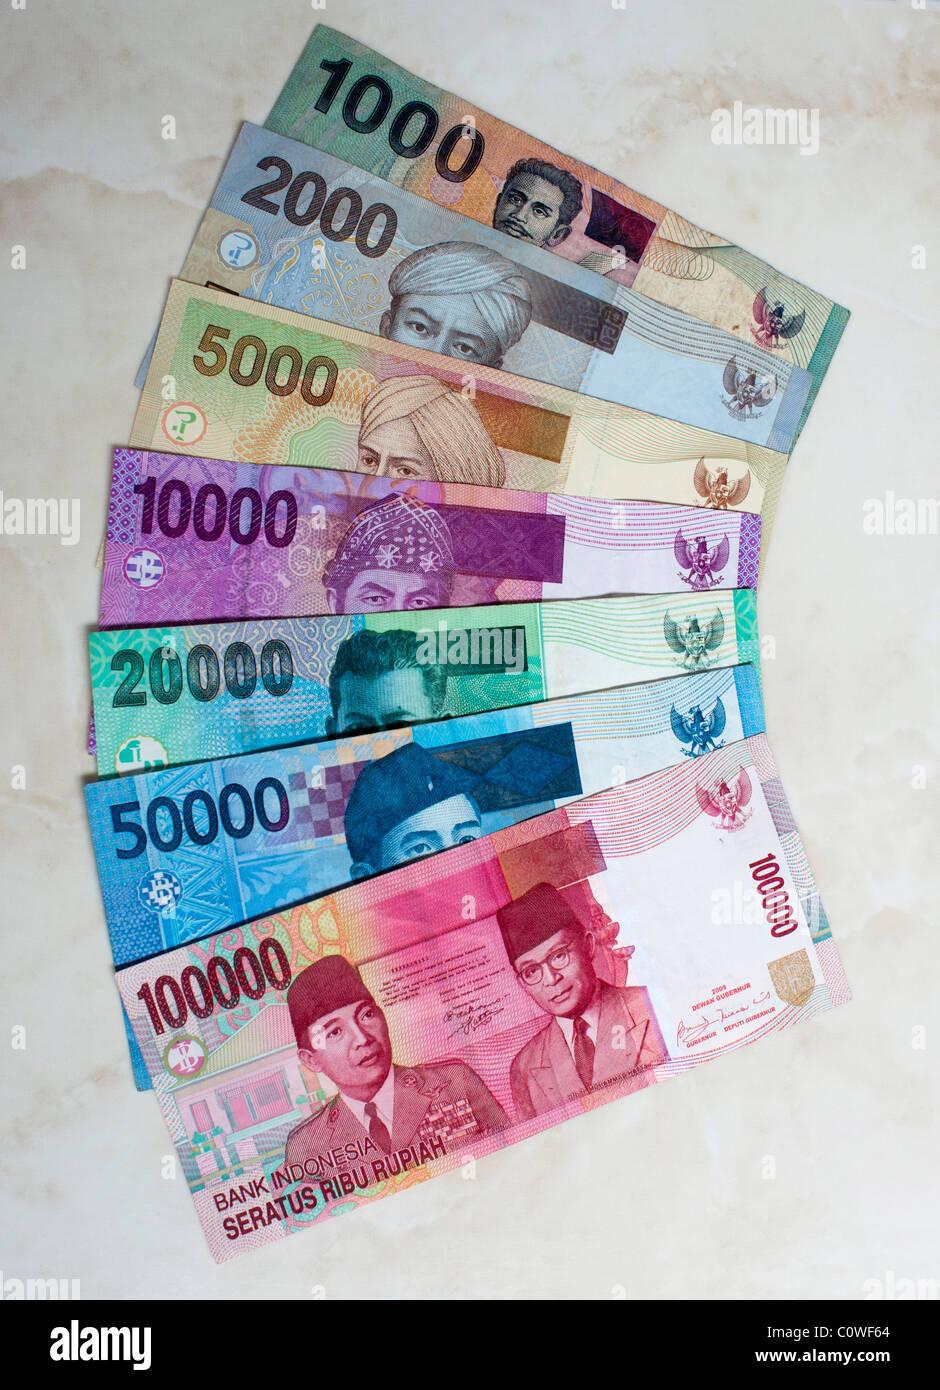 Indonesian Currency Notes From 100 000 To 1000 Rupiah Stock Photo